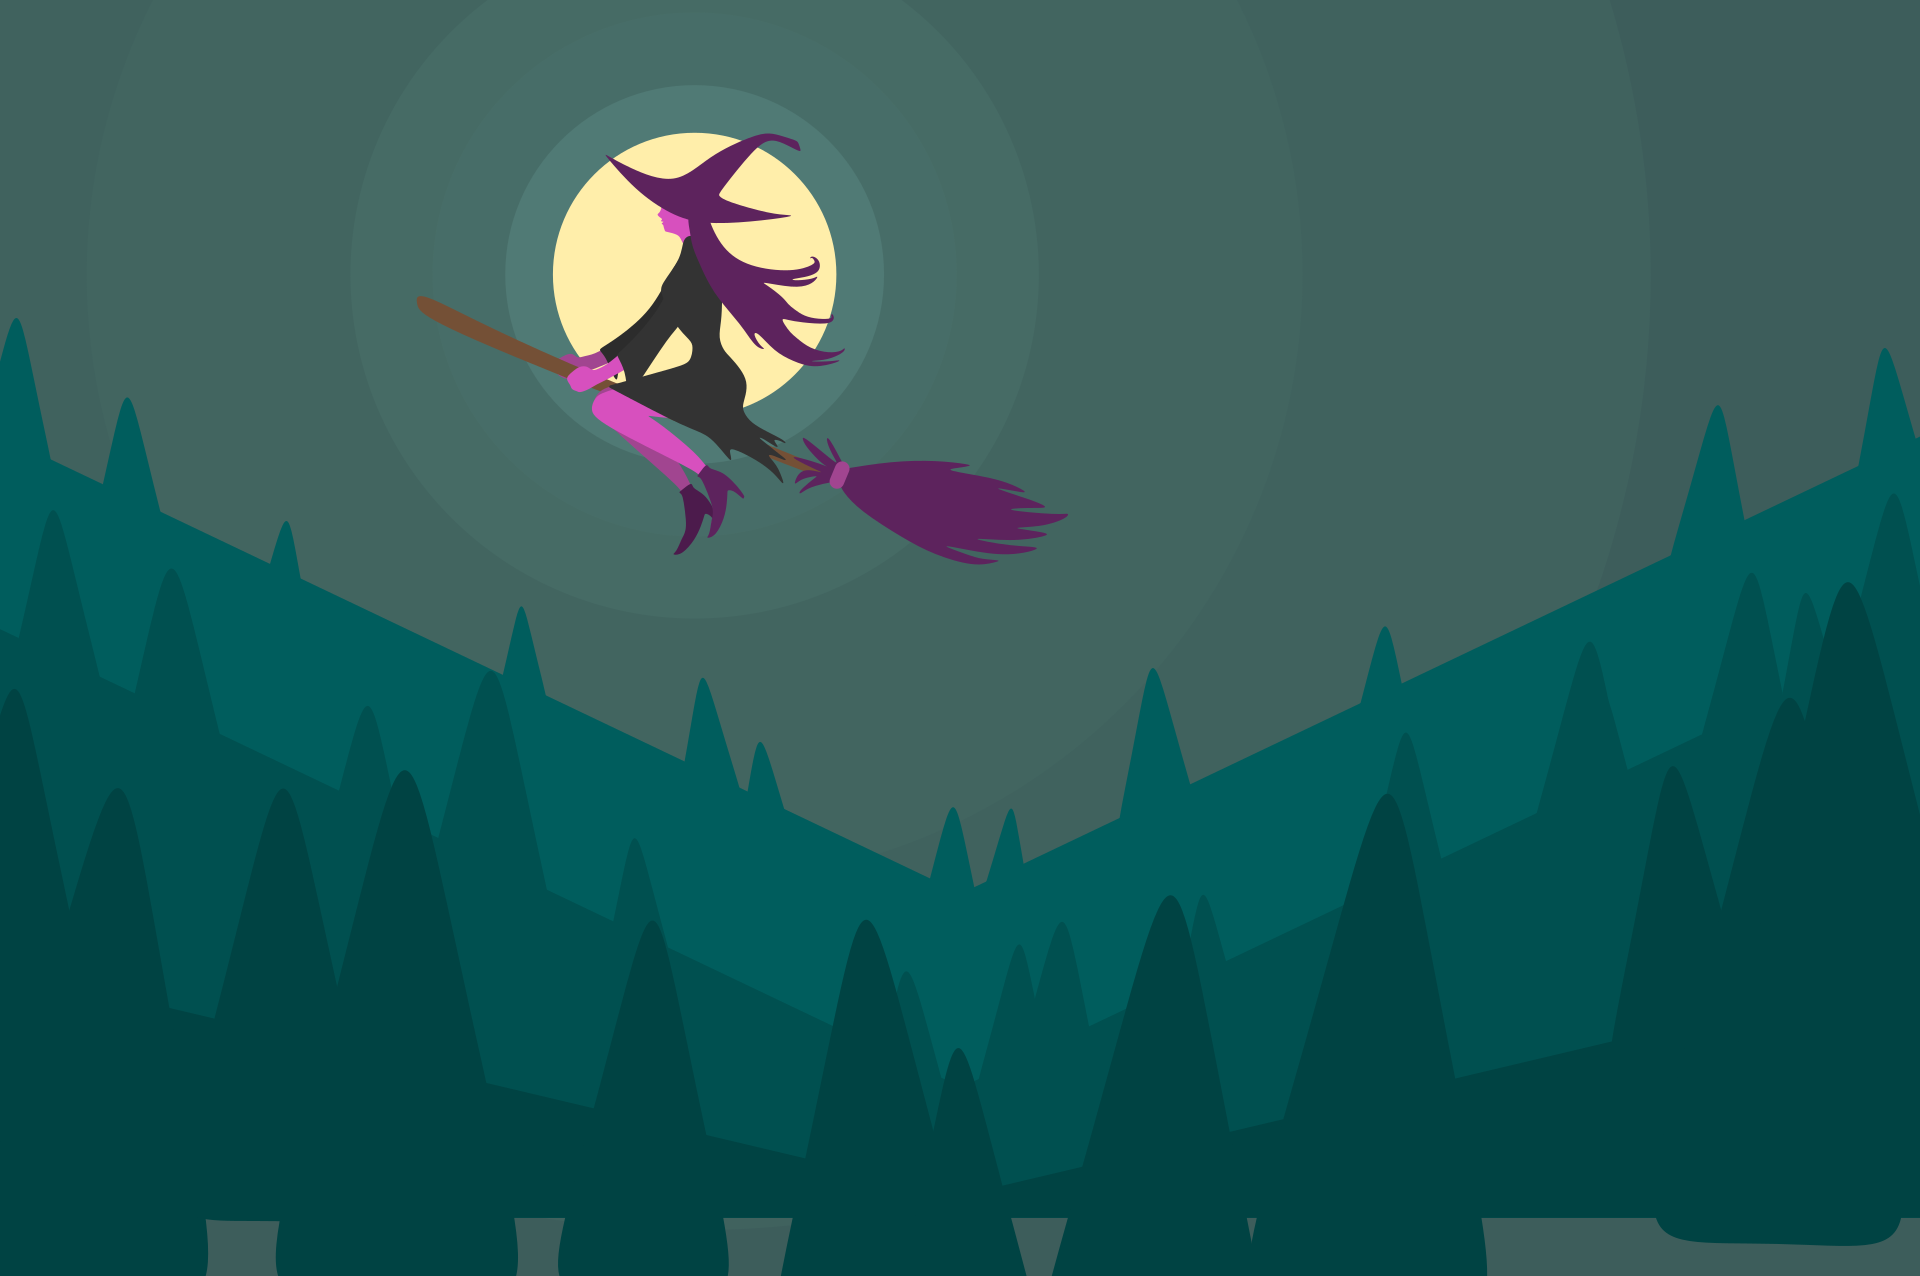 Stylised graphic of a purple witch on a broom flying across a moon above a green forest